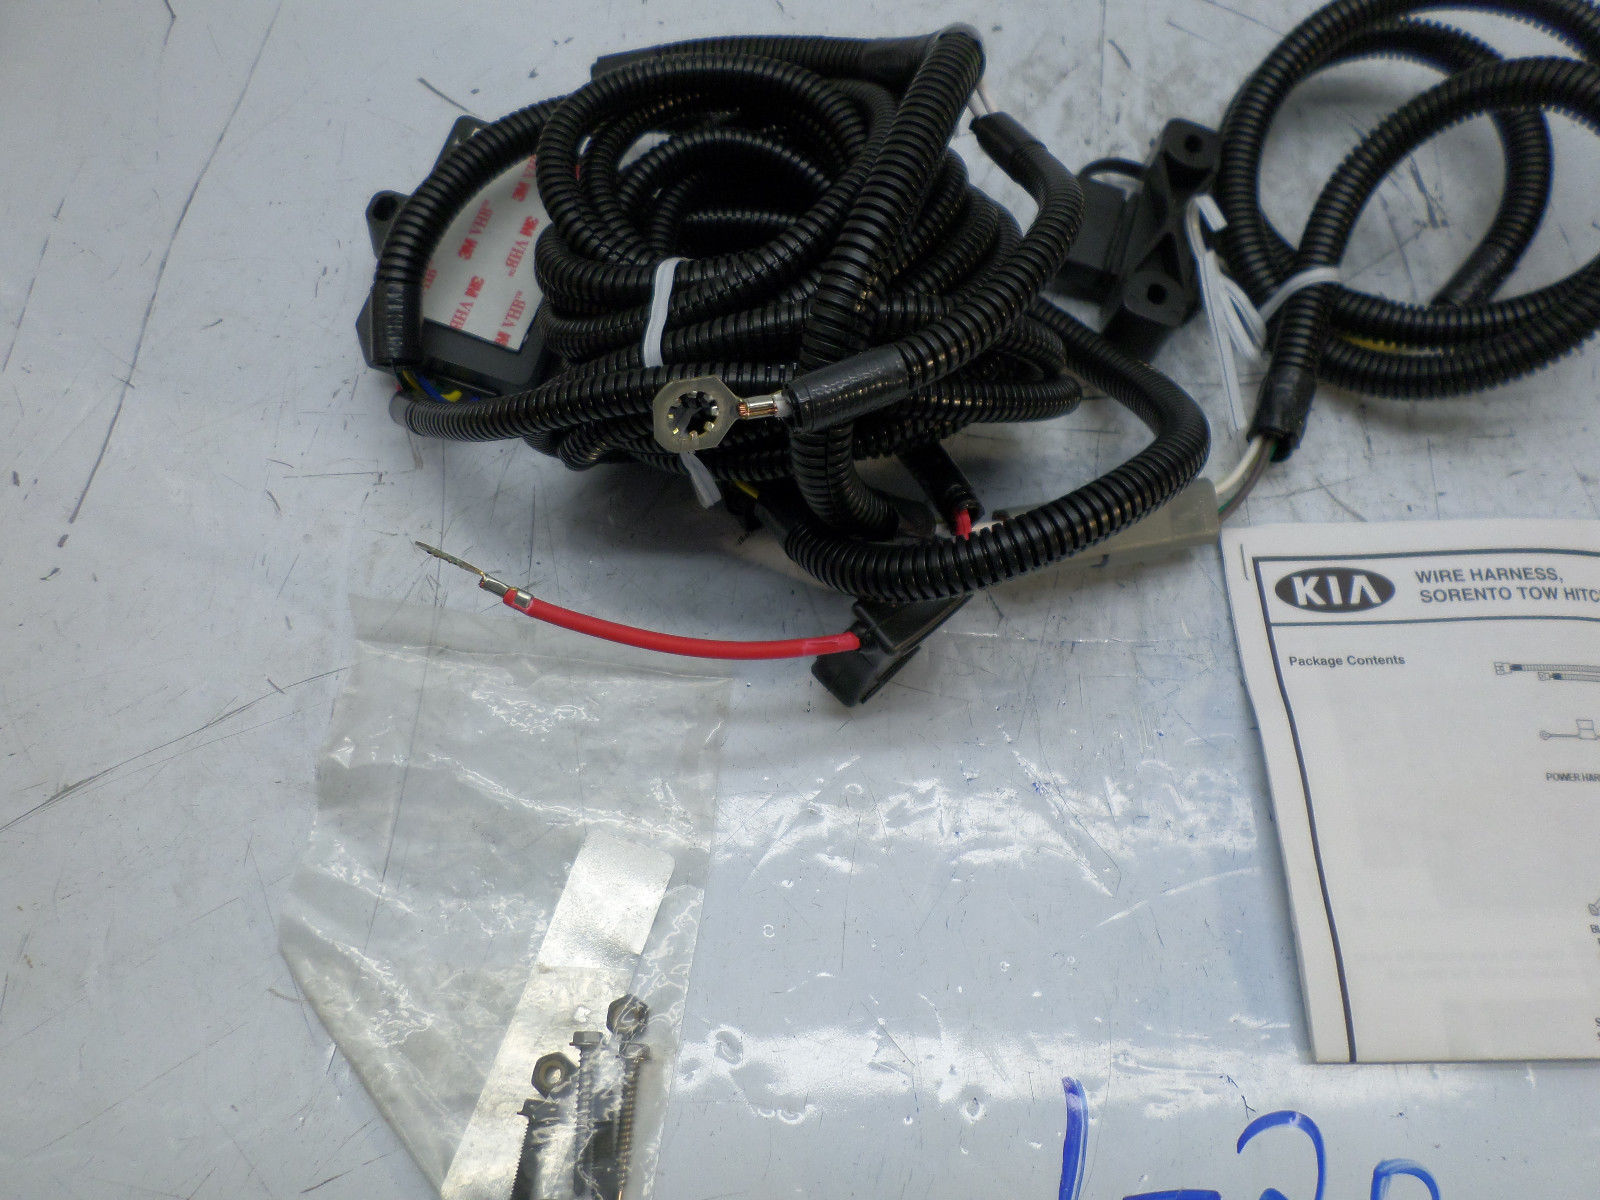 New Oem Trailer Hitch Wiring Harness Kia Sorento 03 04 05 06 Ub030 2004 Ay116